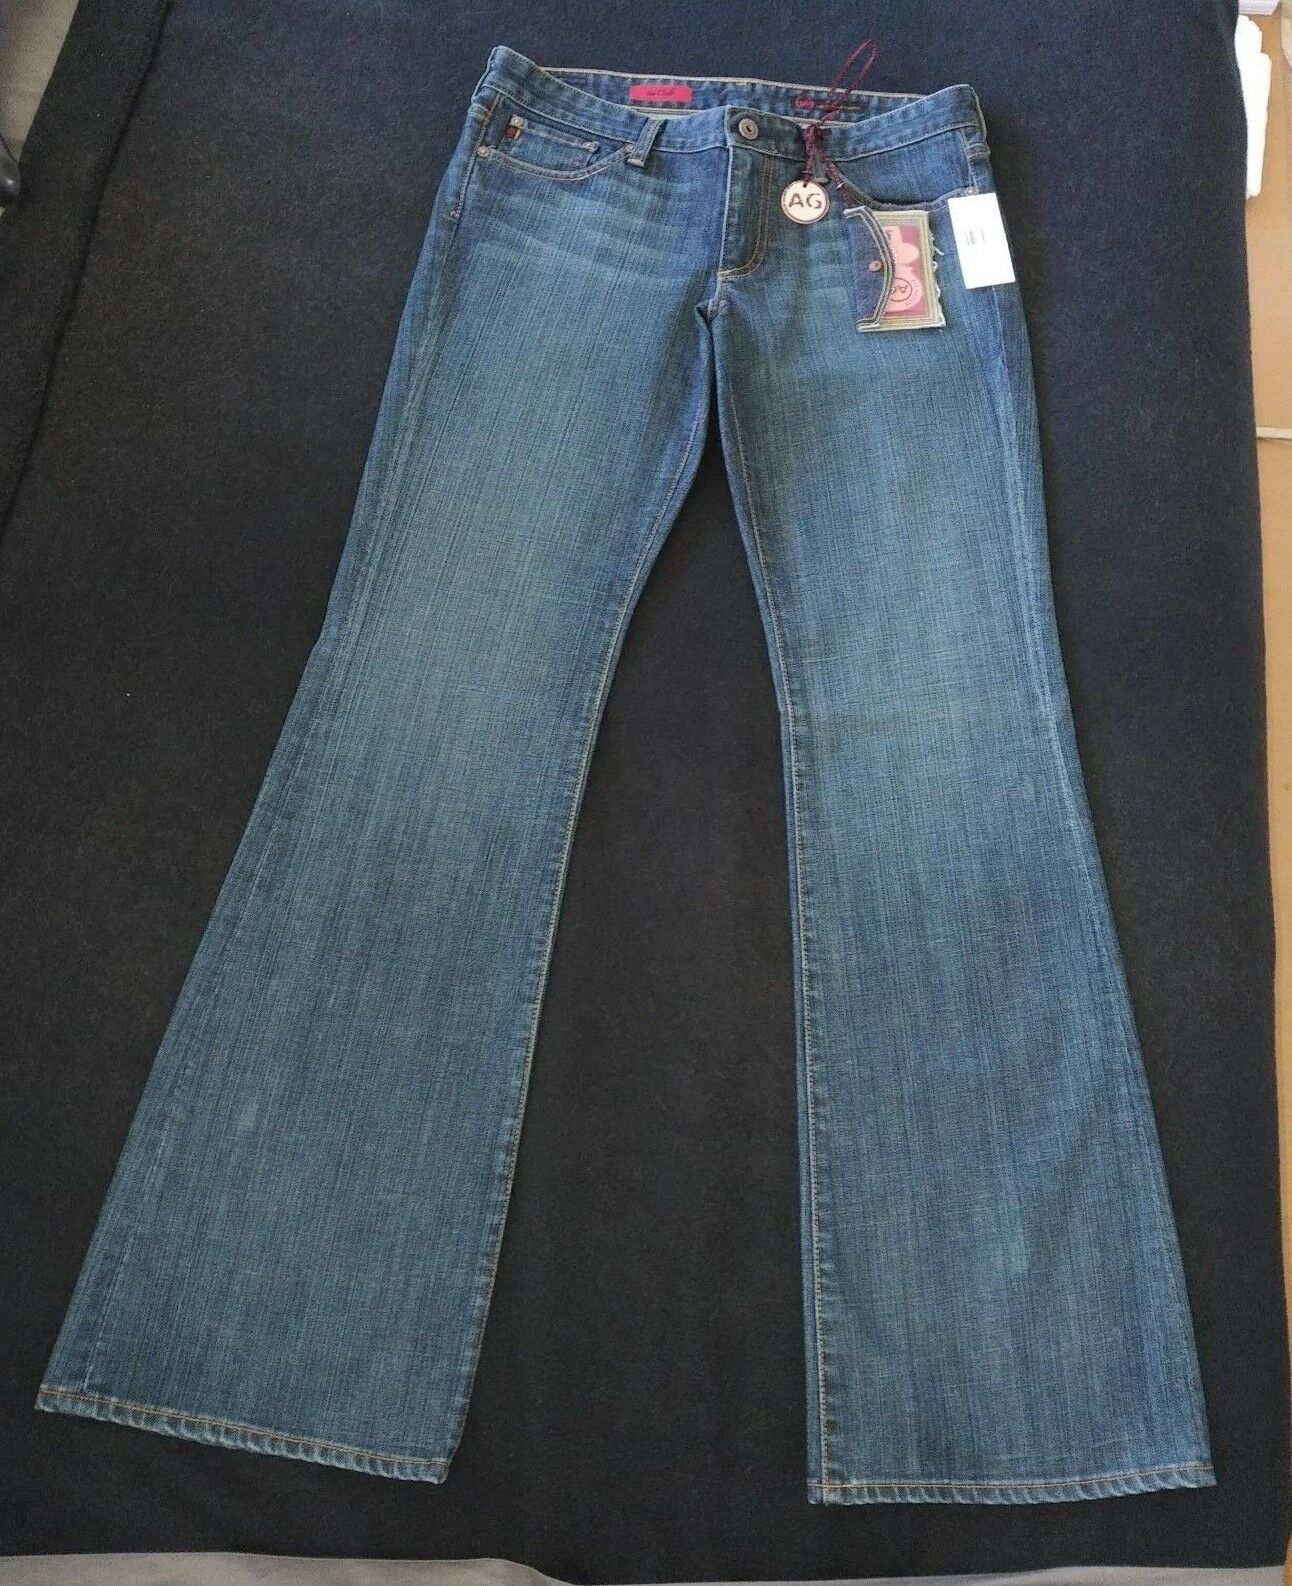 BRAND NEW WOMEN'S AG ADRIANO goldSCHMIED THE CLUB JEANS IN SIZE 30 - RARE FIND